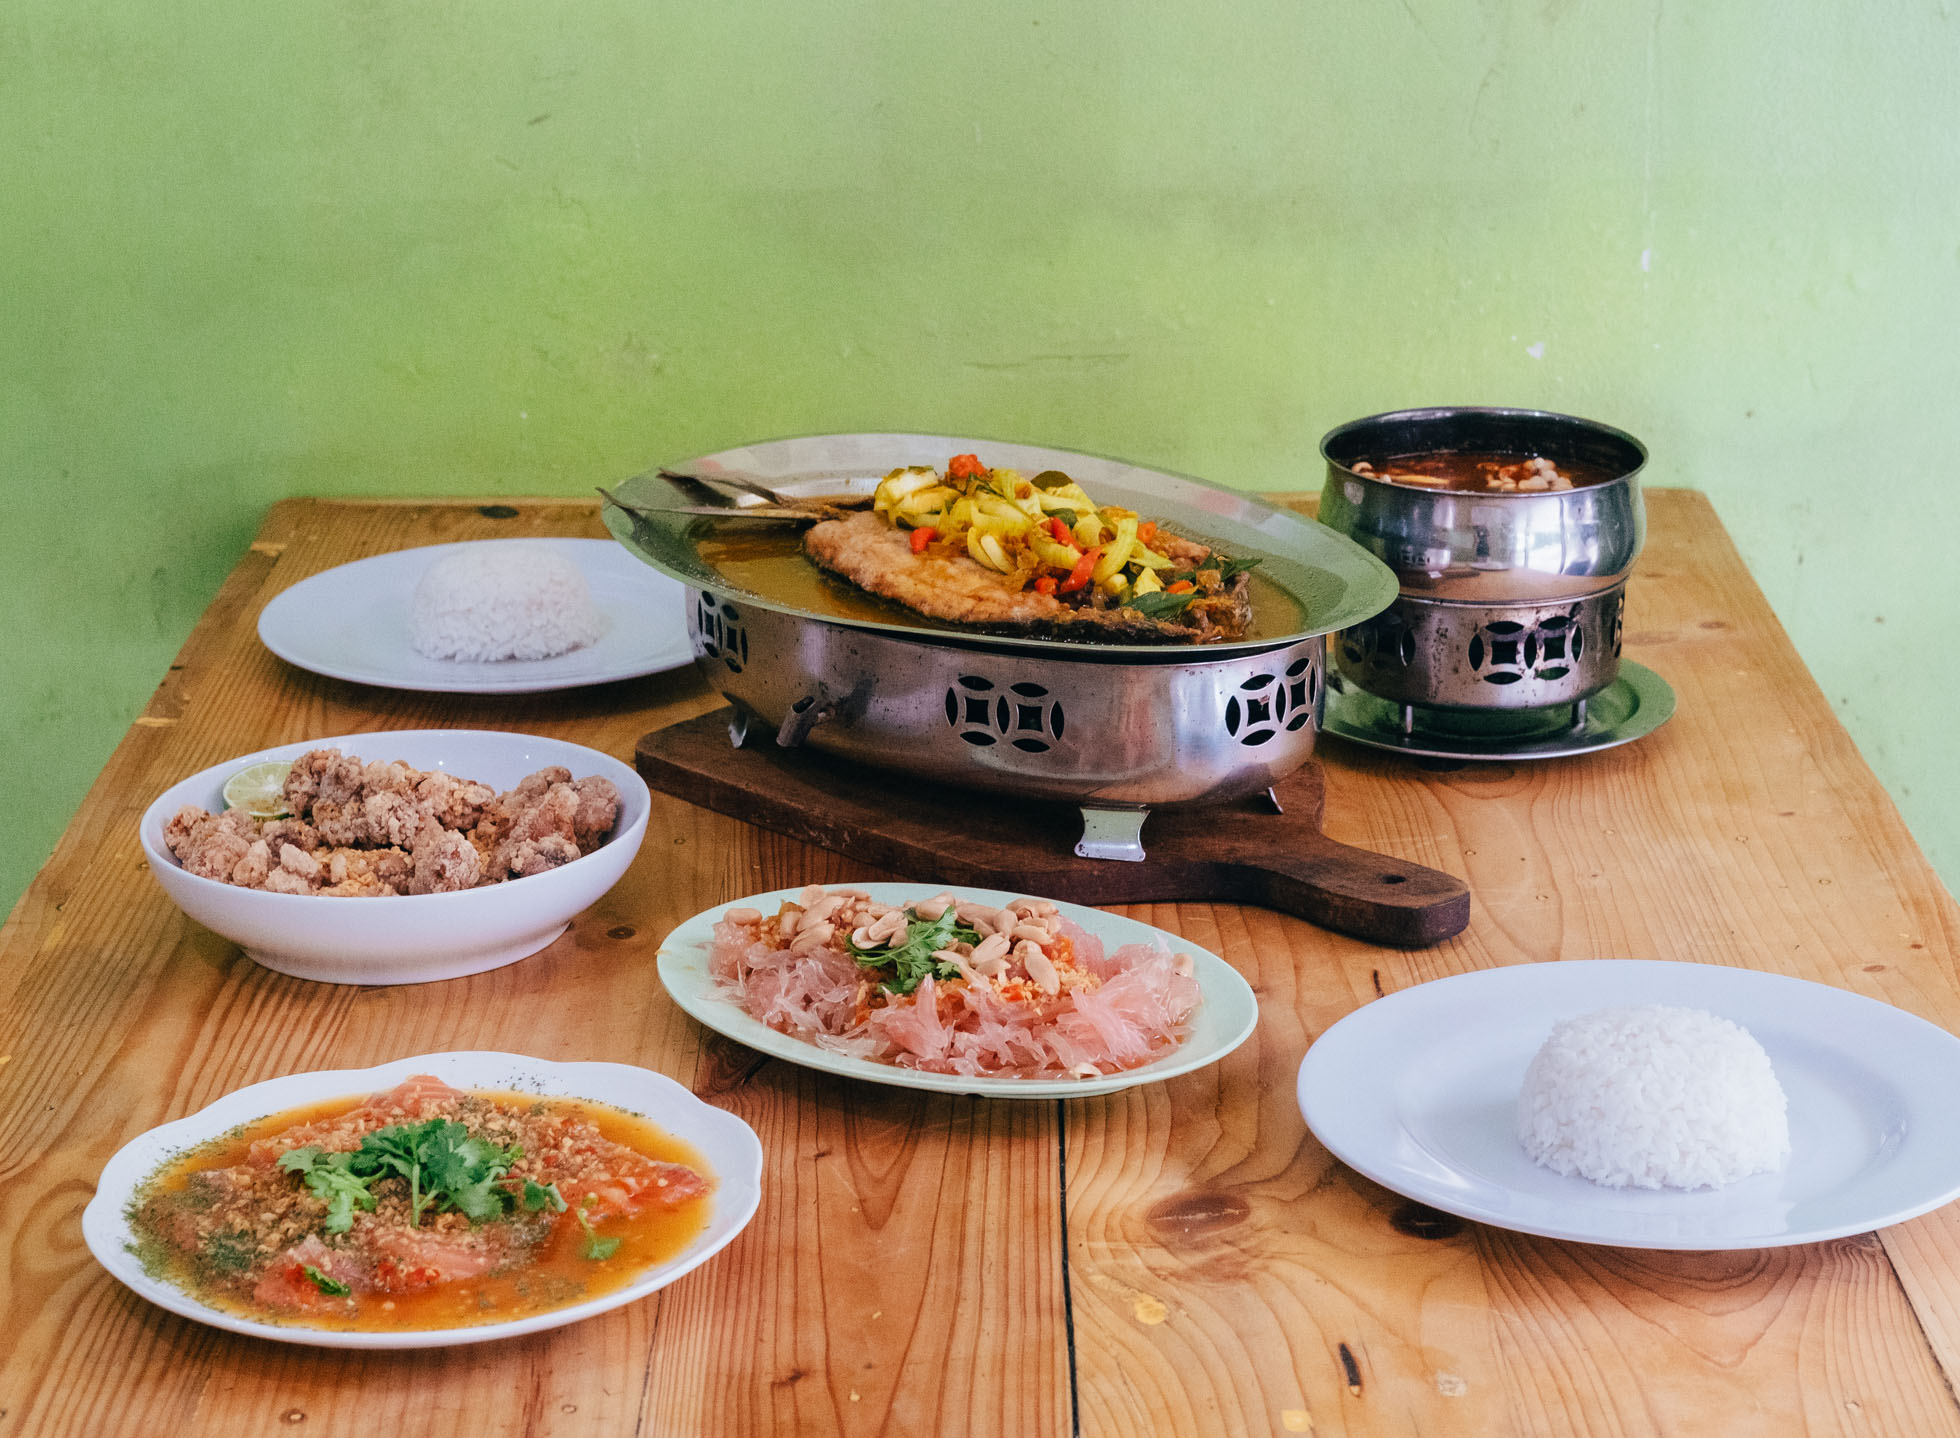 The Candid Delight of Warung SCI